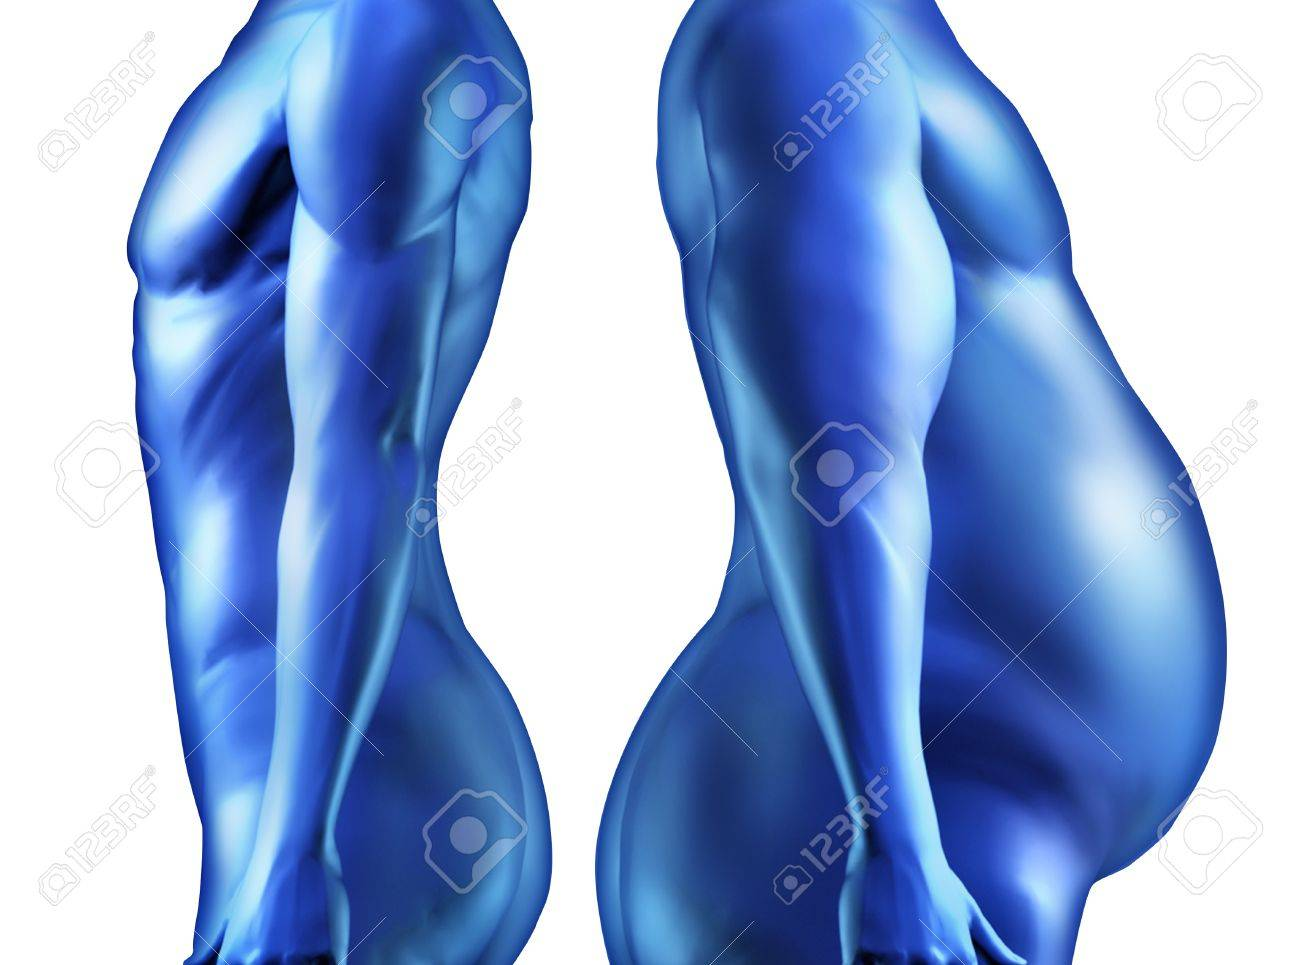 Dieting weightloss and the human body with a healthy fit person and a fat obese overwieght individual side by side as a comparison of body shape as physical wellbeing and health in regards to fitness of anatomy Stock Photo - 12353916